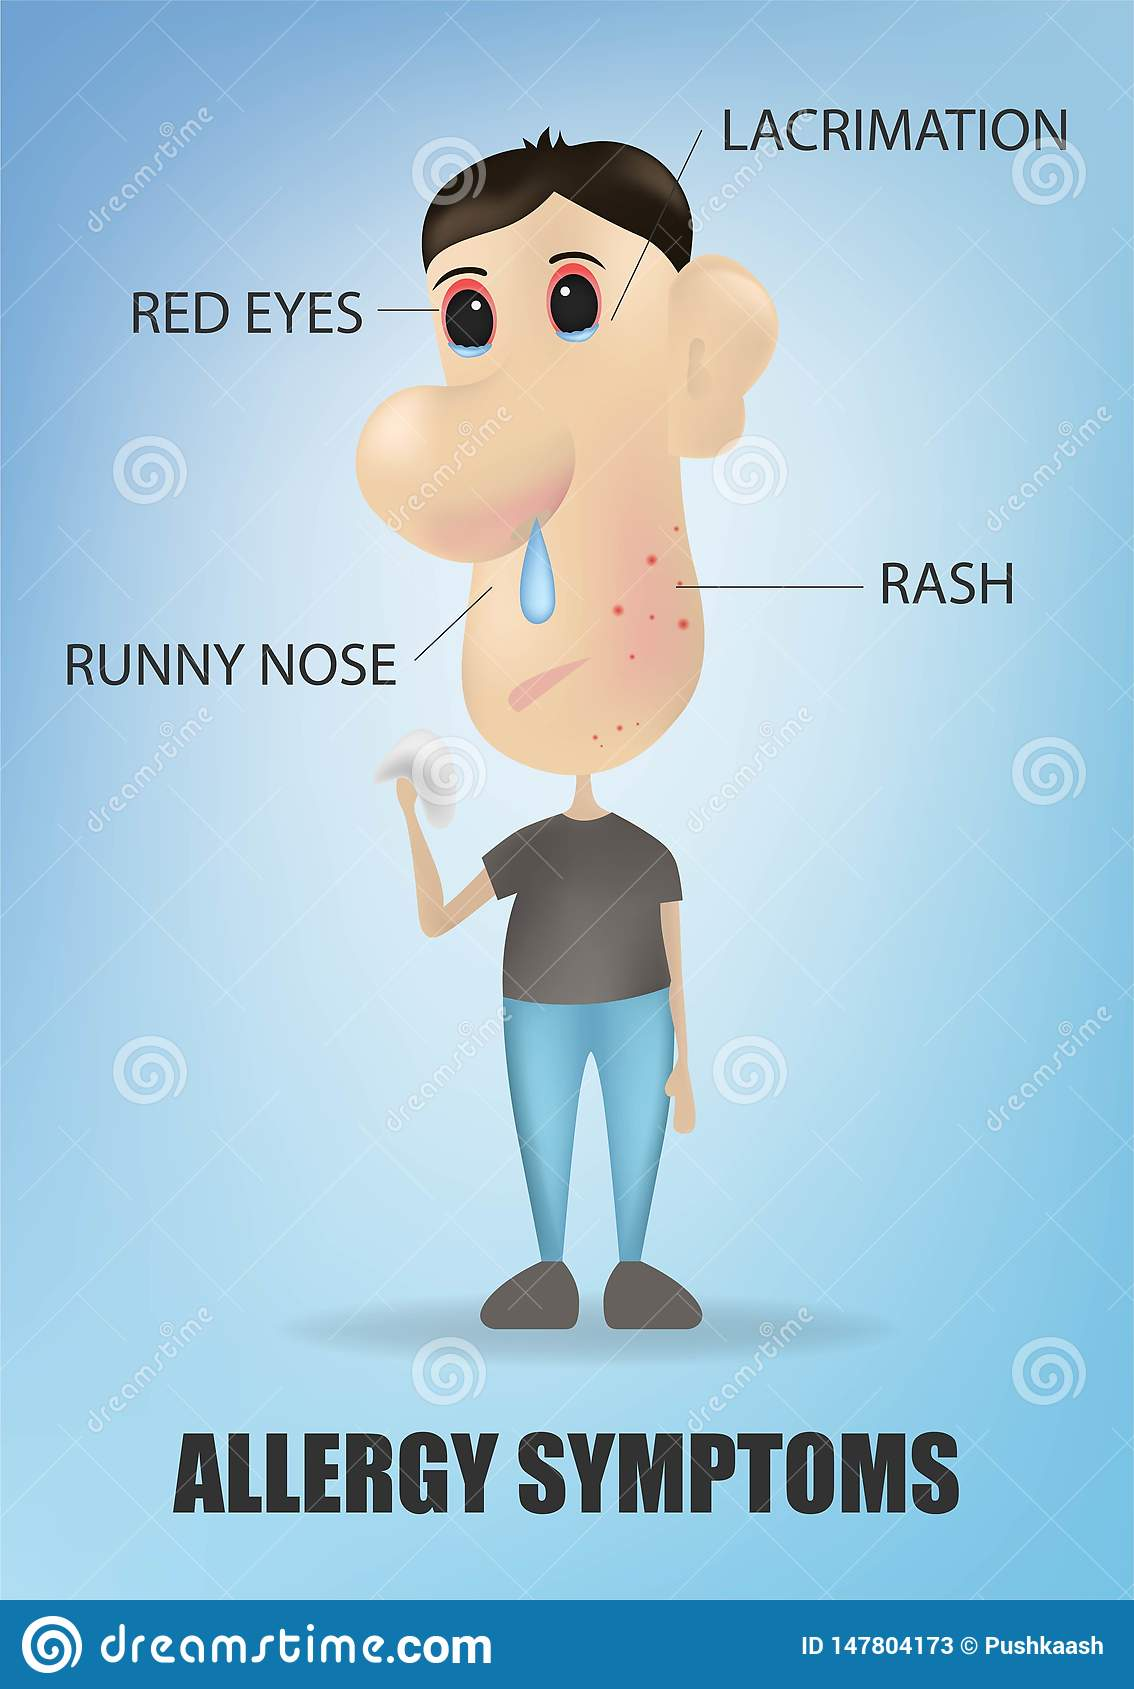 Allergy symptoms concept with cough sneeze itching skin rash runny nose and sick sore eyes. Vector illustration in cartoon style.